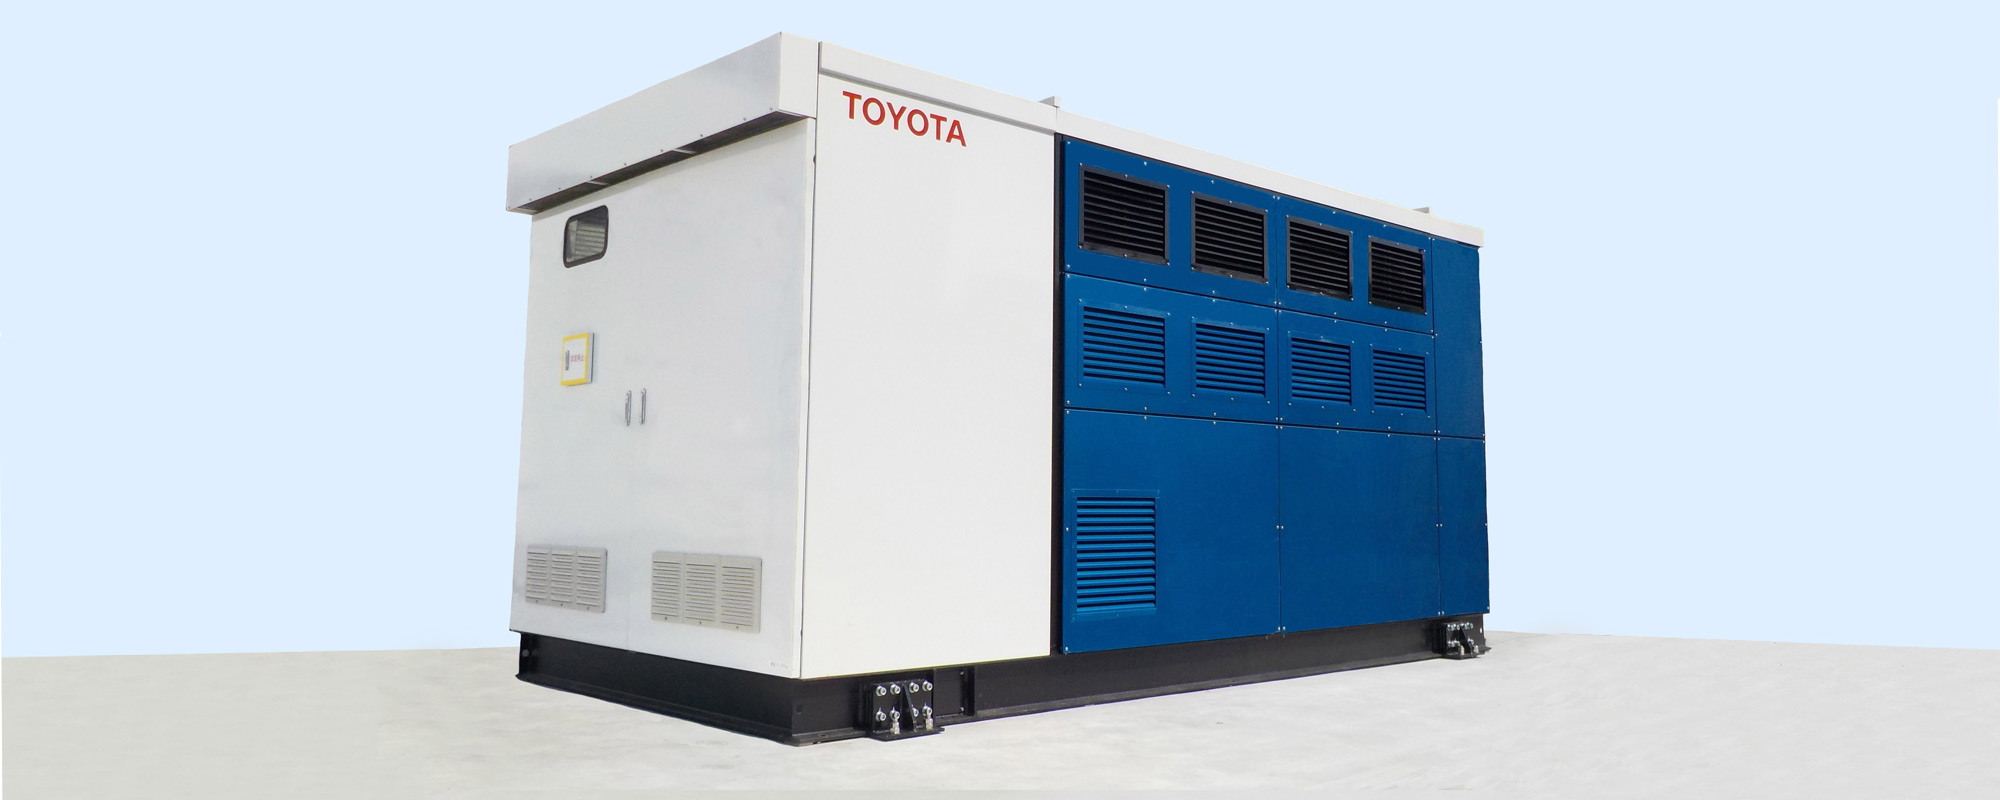 Toyota installeert Stationary Fuel Cell Generator bij Honsha-fabriek